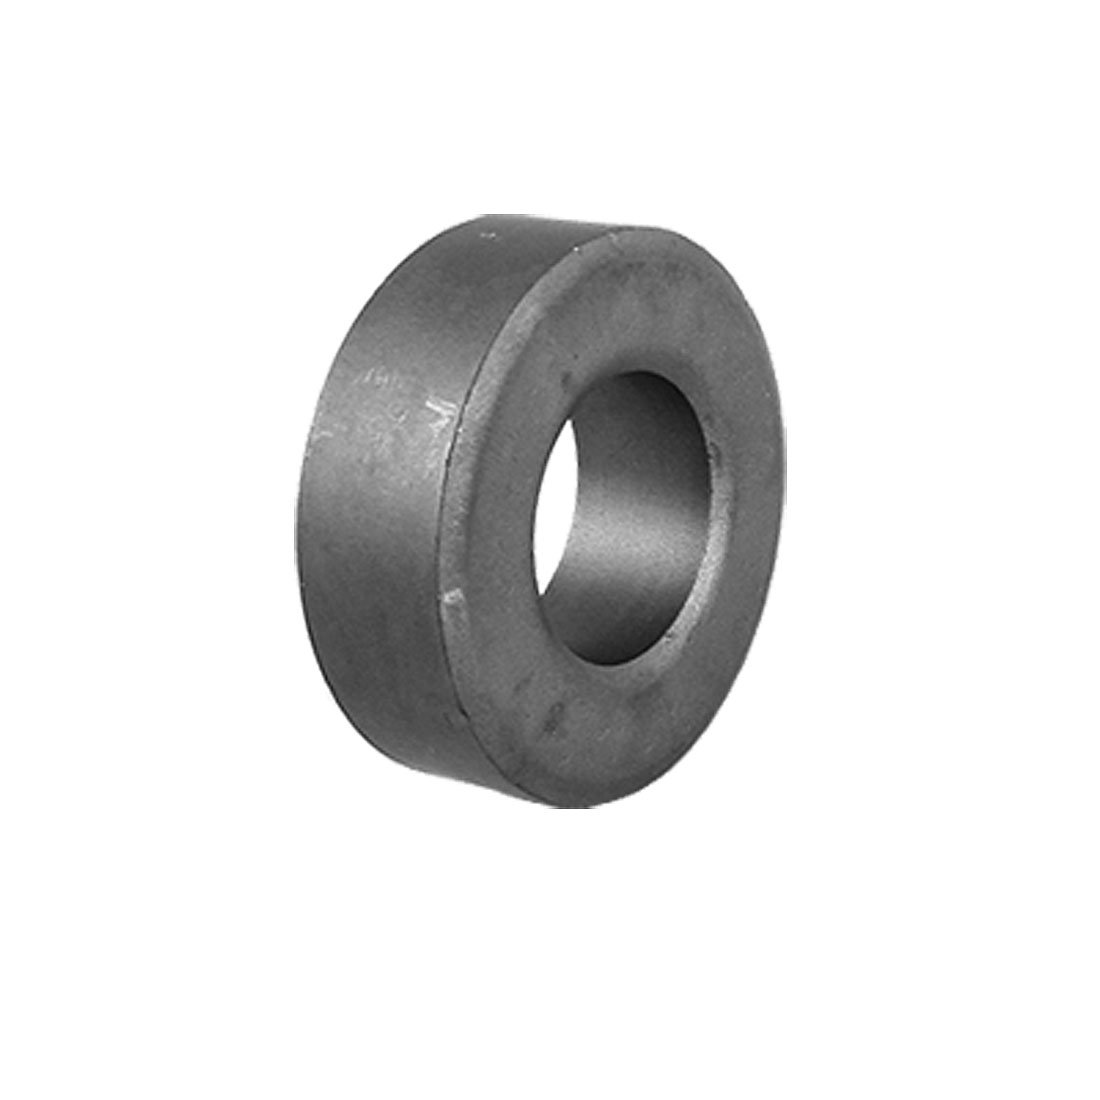 Aexit 38mm Outer Passive Components Dia 13mm Thickness Ferrite Ring Core Tube Ferrites Toroids 12.0uh